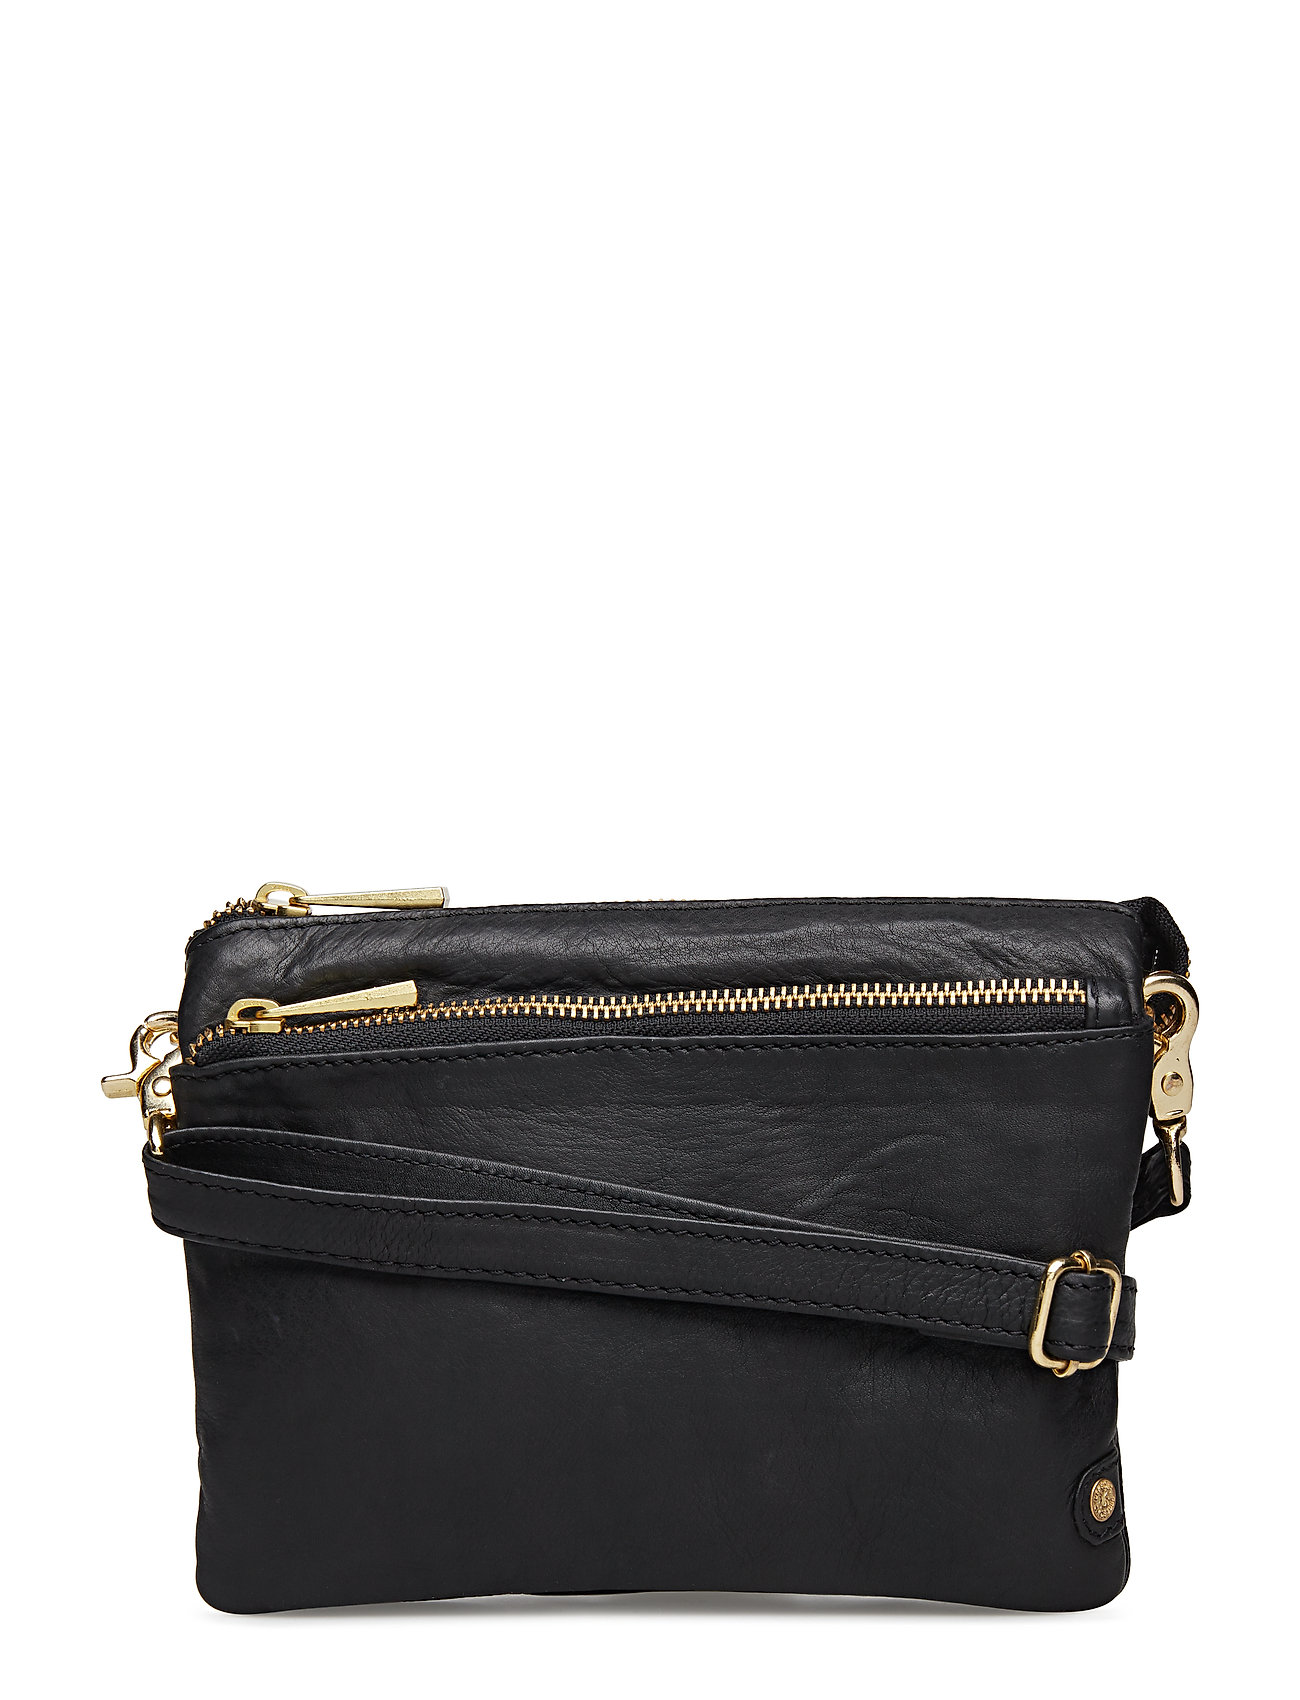 Image of Small Bag / Clutch Bags Small Shoulder Bags/crossbody Bags Sort DEPECHE (3115787093)